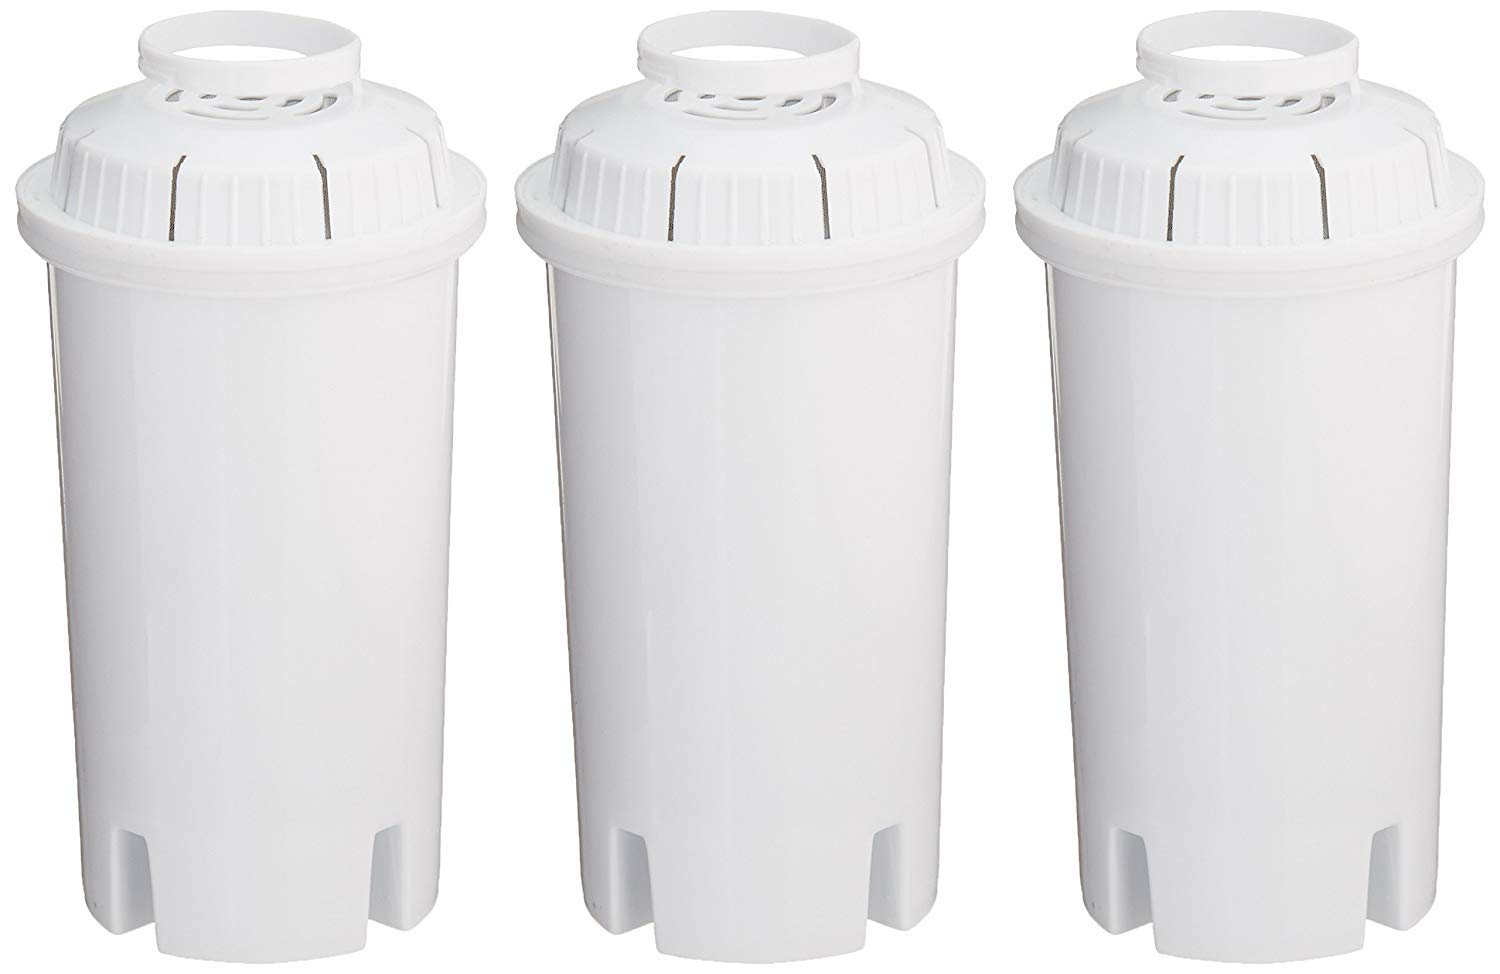 Sapphire Replacement Water Filters, for Sapphire, Brita and Pur Pitchers, 3-Pack by Sapphire